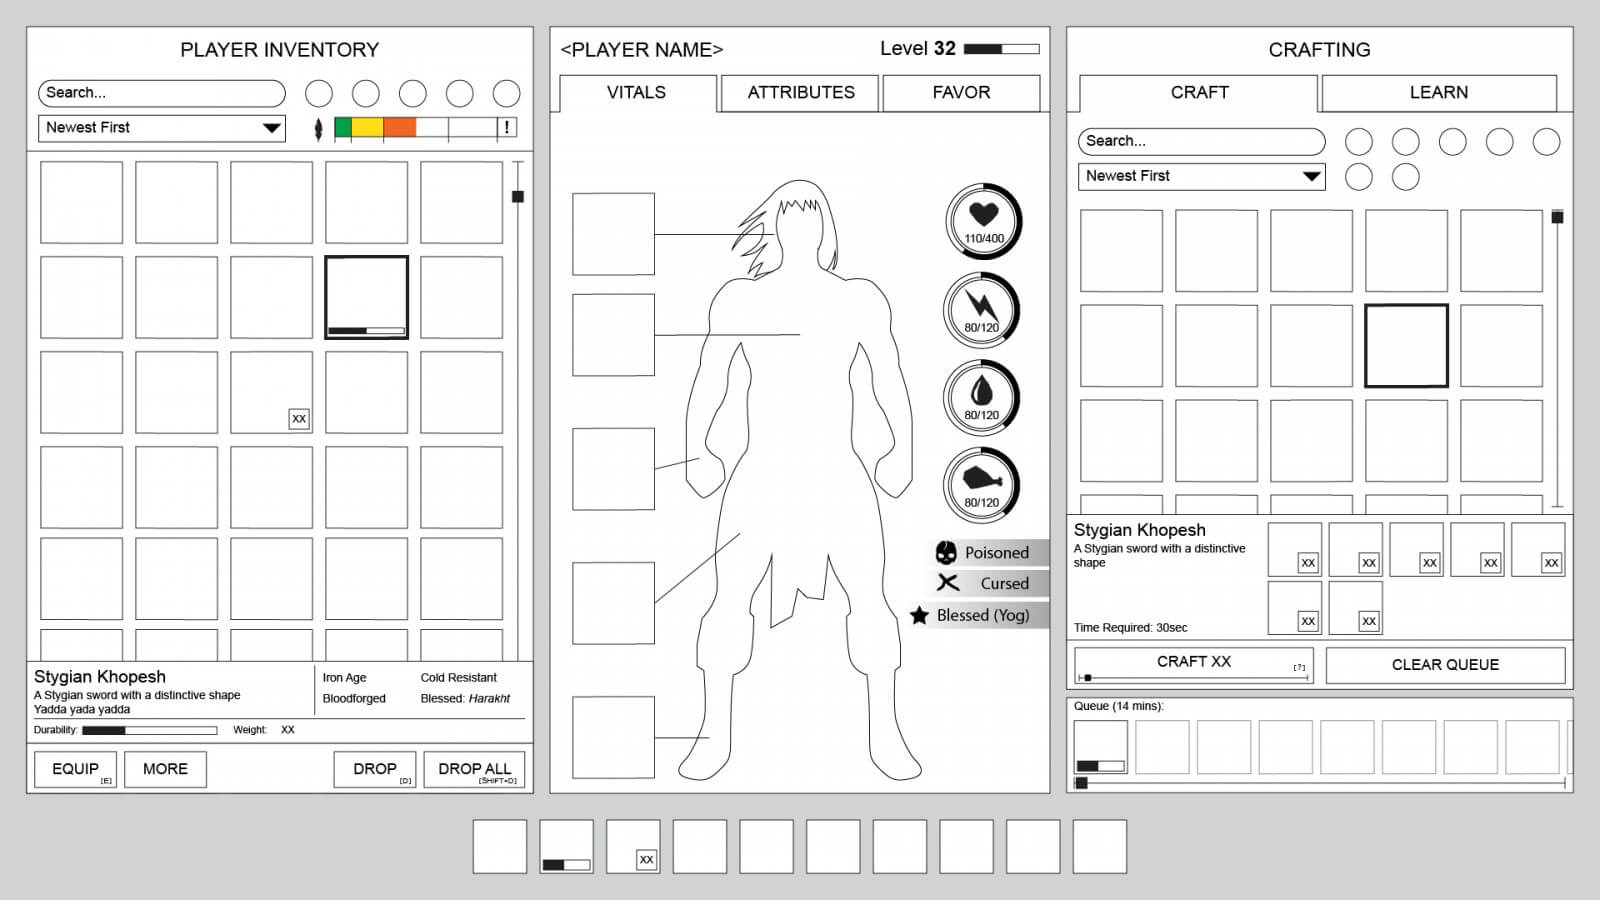 Conan Exiles - UI Design - Wireframe design - Character information